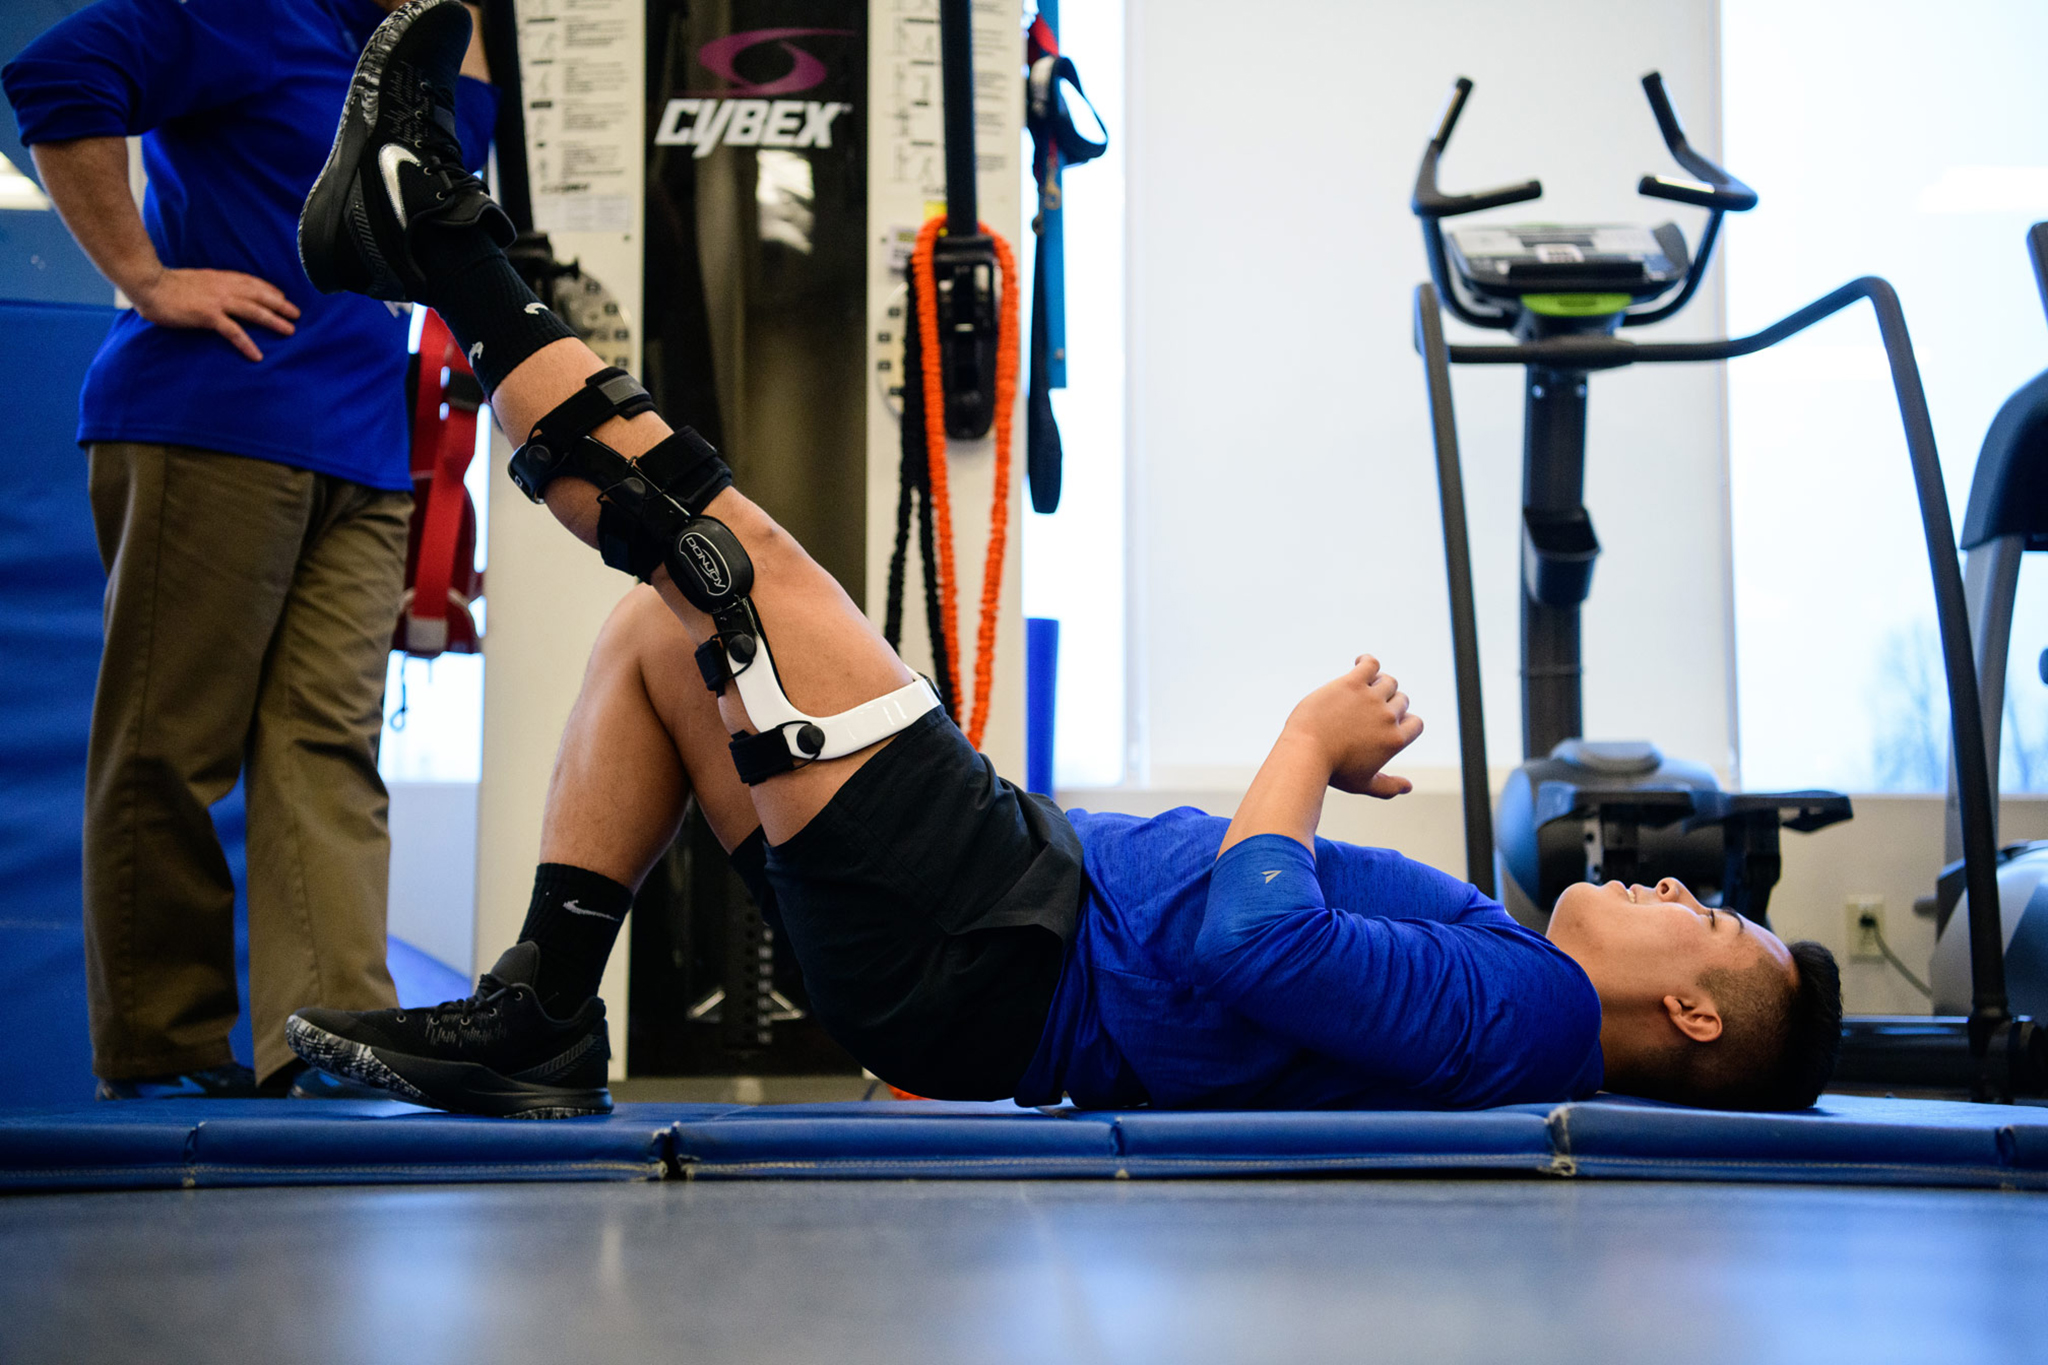 Gil wears a knee brace and lies down to perform knee strengthening exercises.